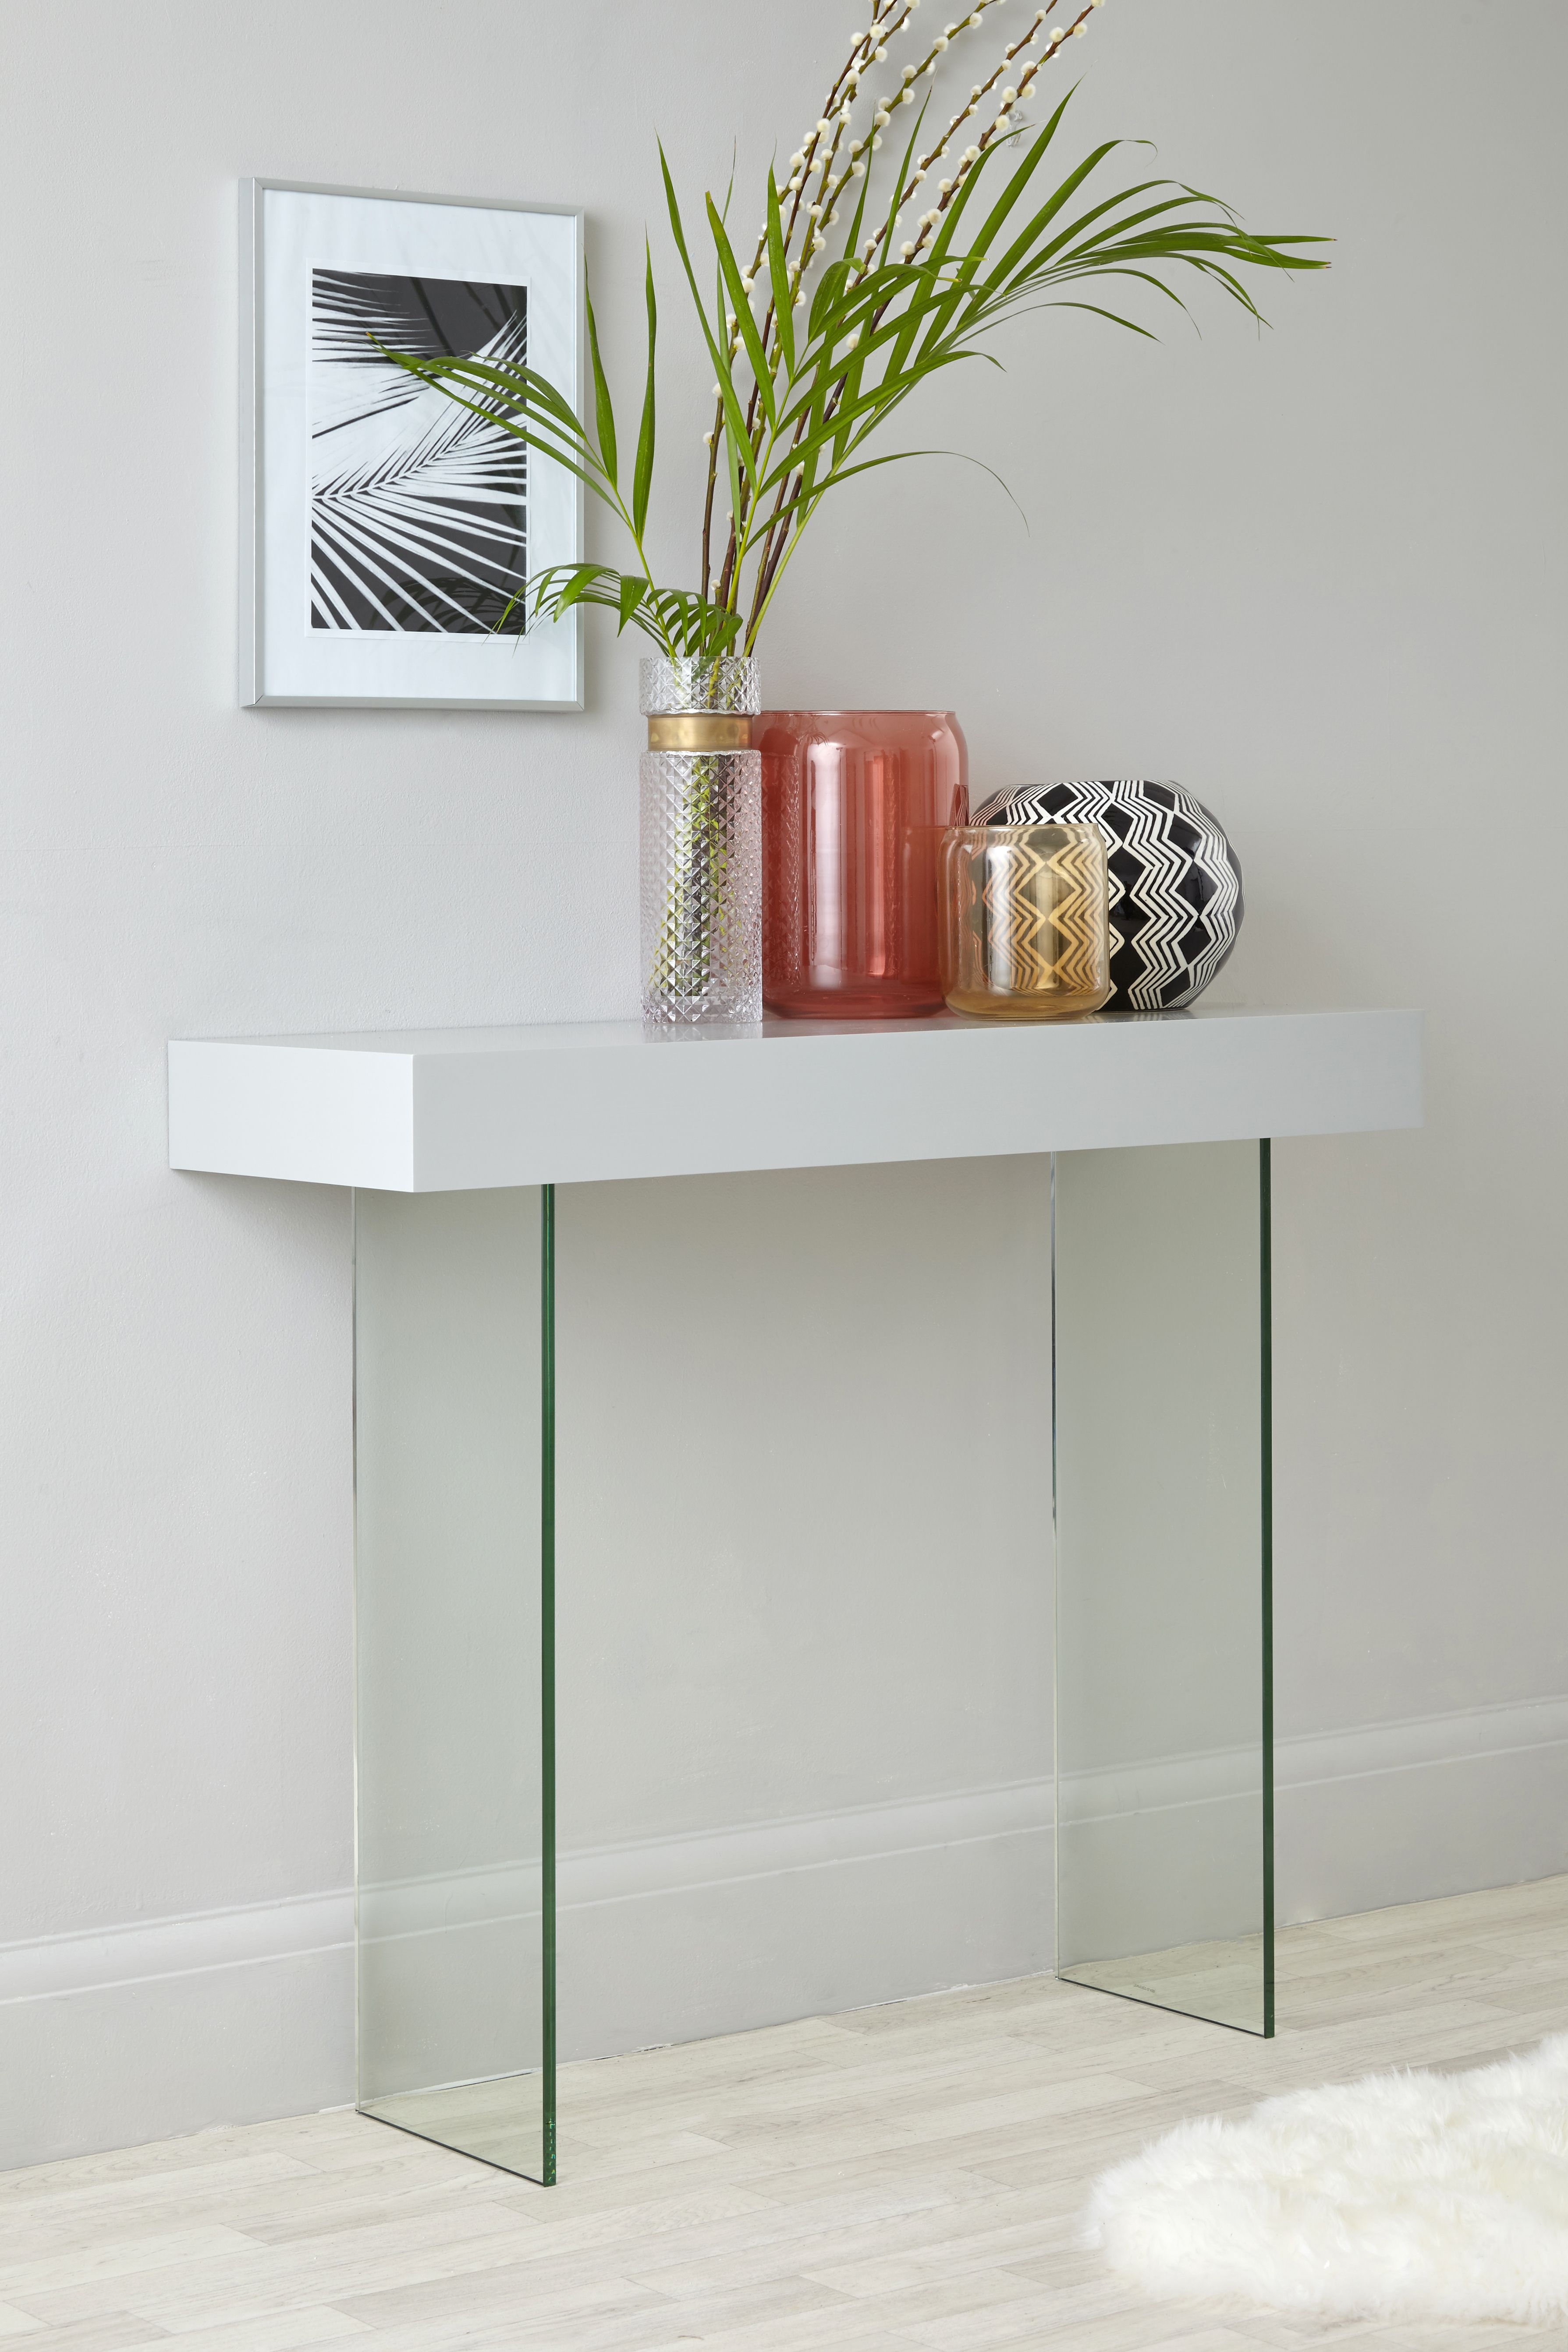 Glass Console Mirrored Finishes Entry Styling Decorative